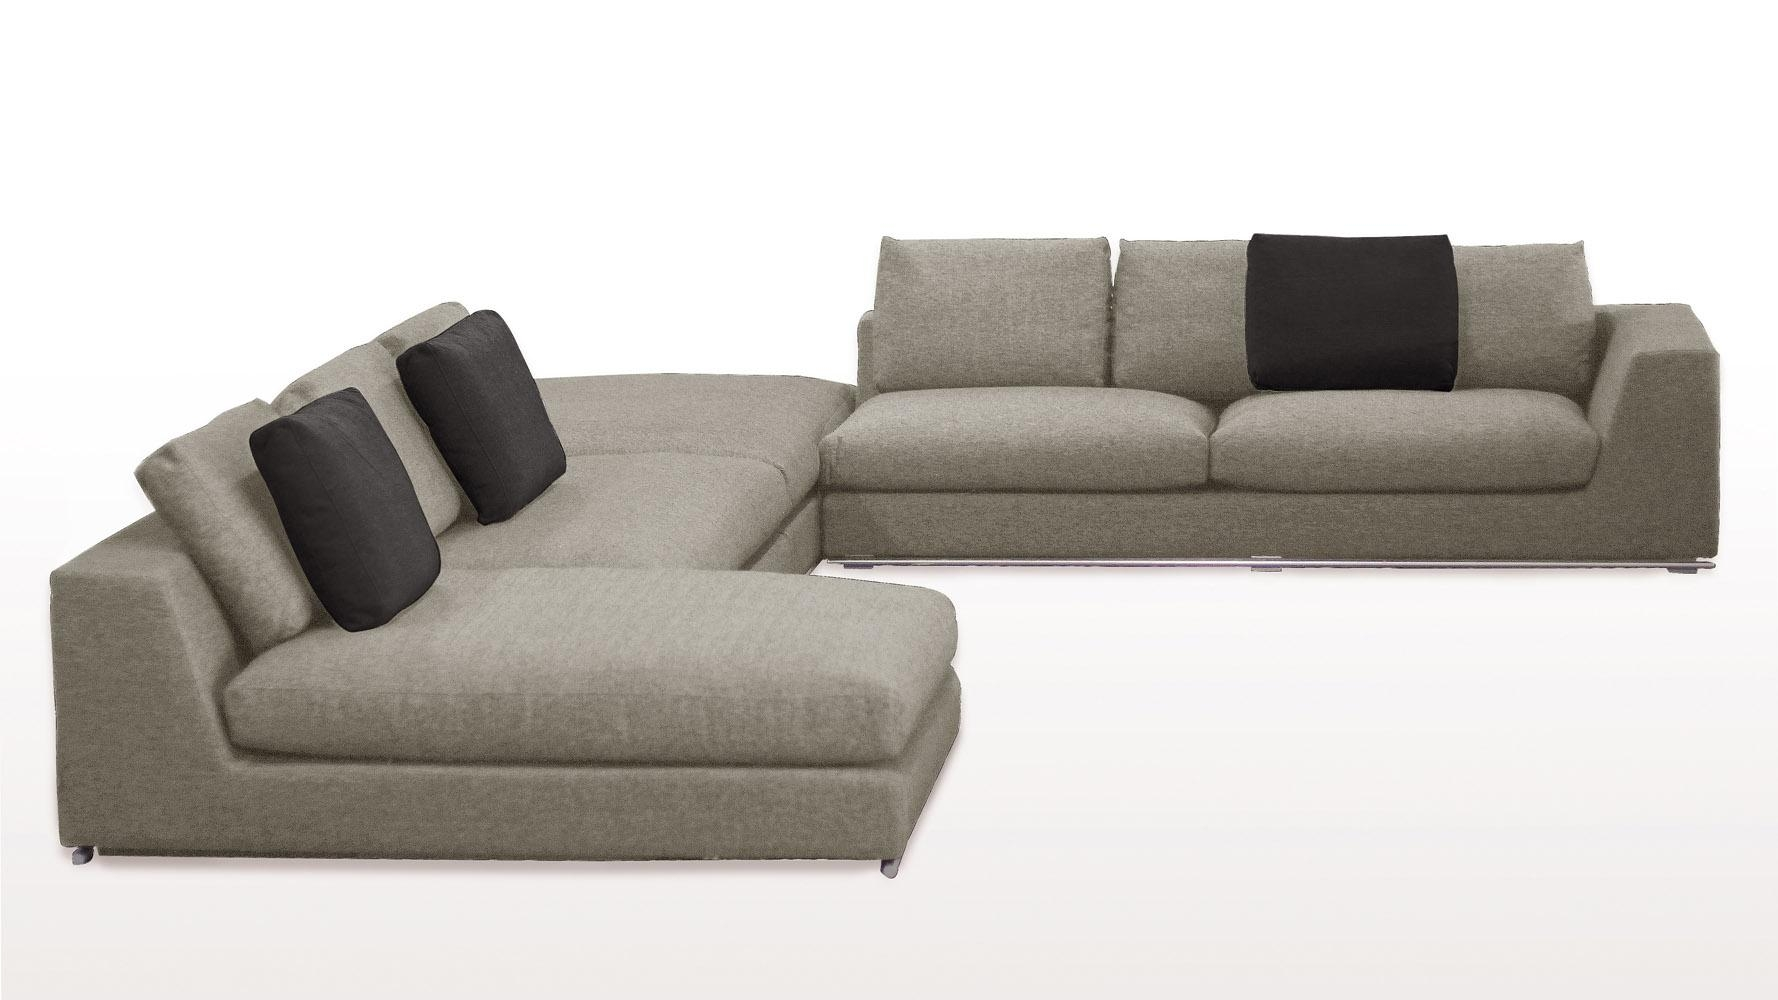 Beautiful Low Profile Sectional Sofa 40 On Sofas And Couches Ideas Within Low Sectional (View 4 of 20)